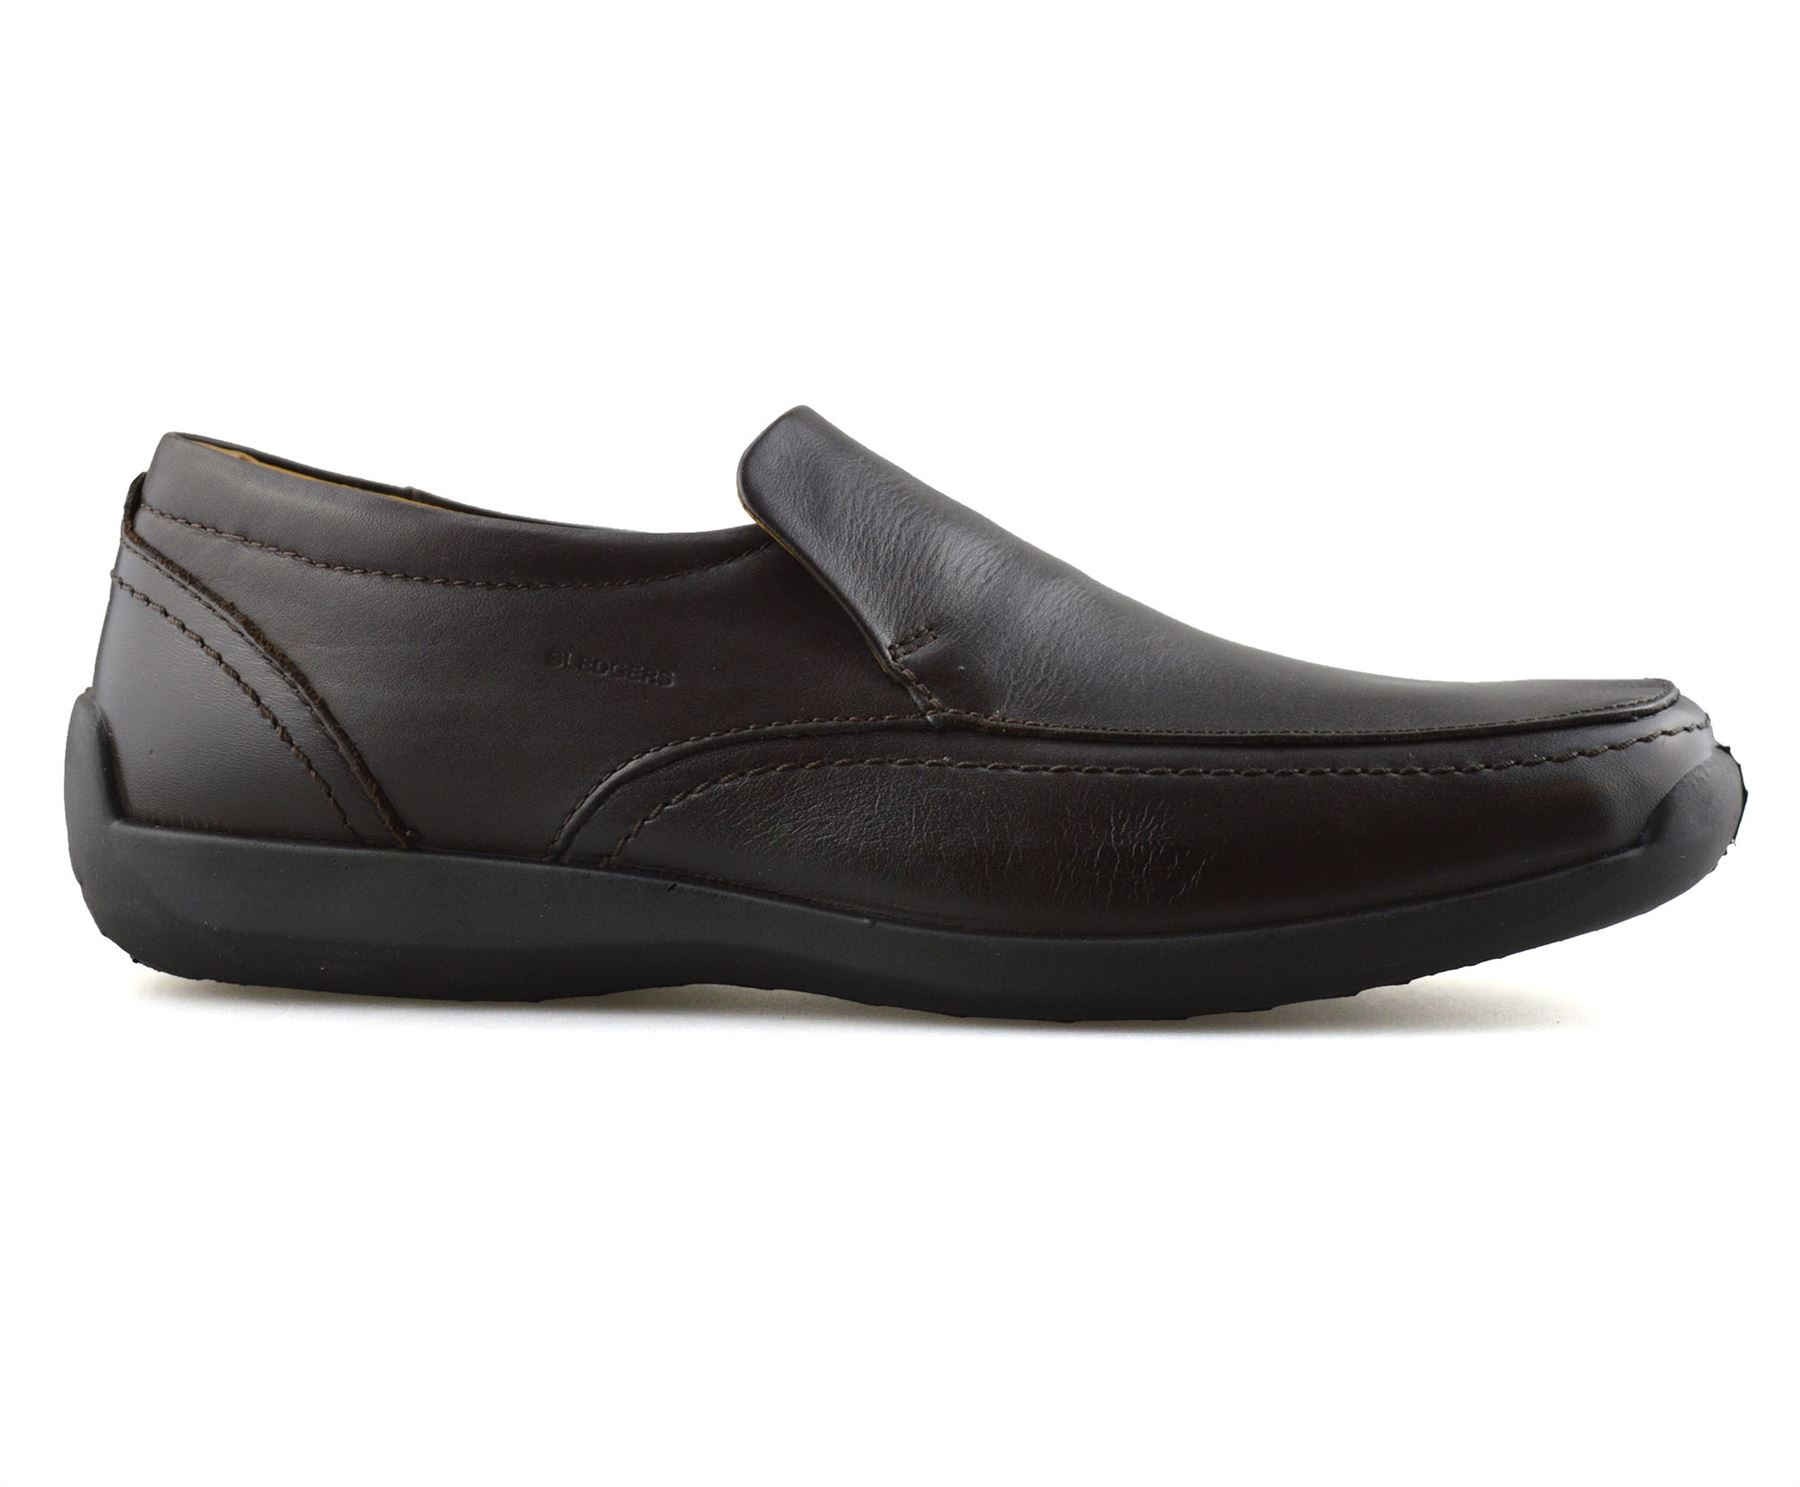 Mens-New-Leather-Casual-Slip-On-Walking-Loafers-Moccasin-Driving-Boat-Shoes-Size thumbnail 8